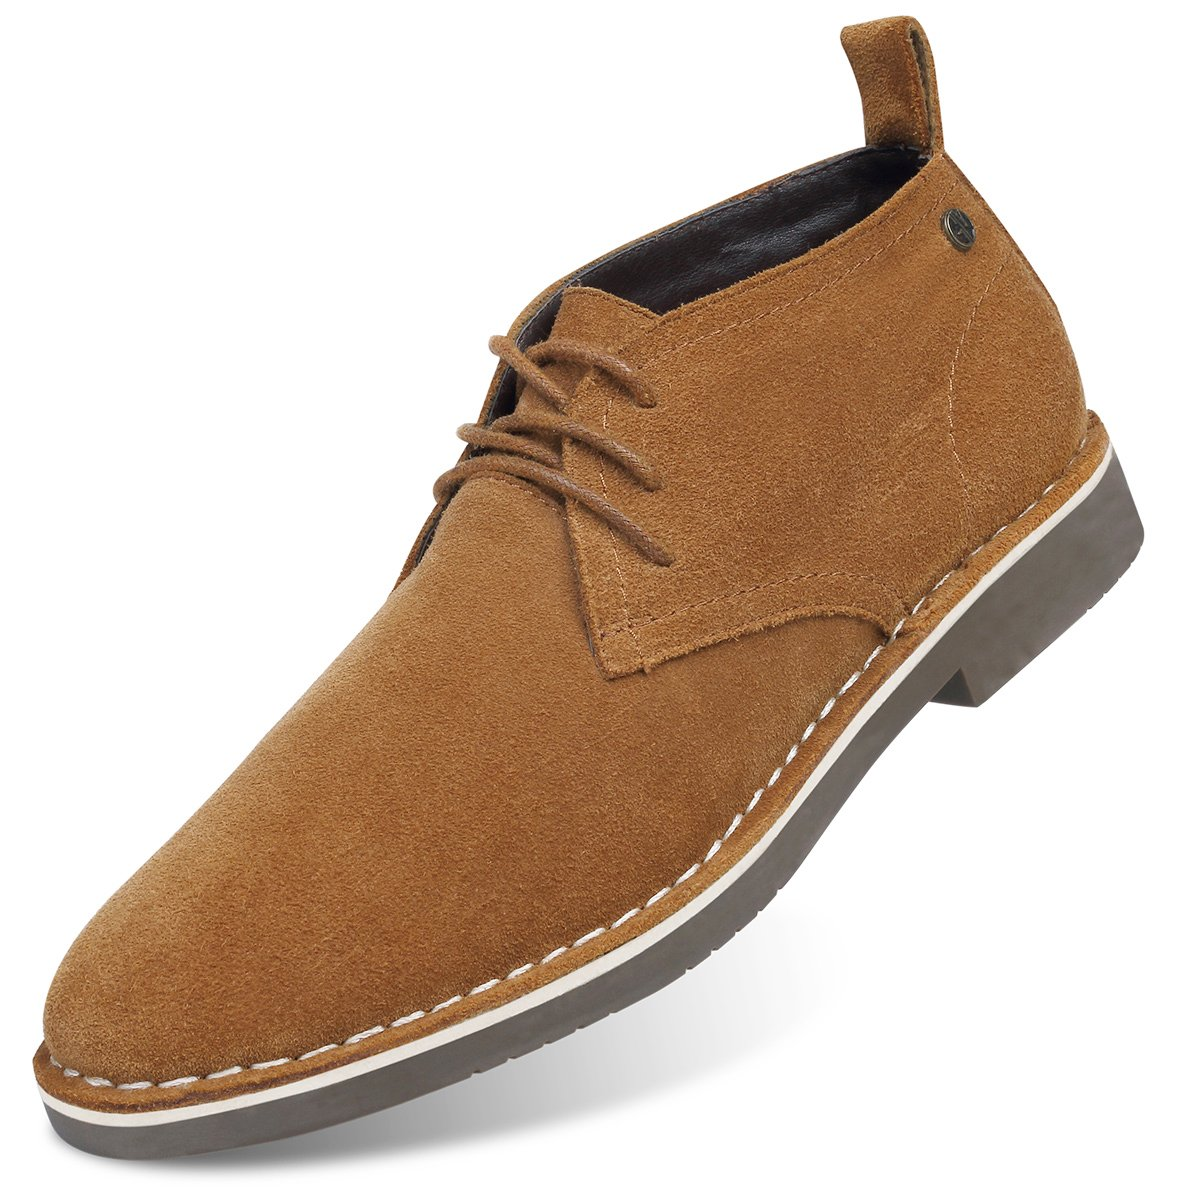 GM GOLAIMAN Genuine Suede Chukka Boots Men Lace-Up Desert Ankle Booties Stylish Leather Shoes